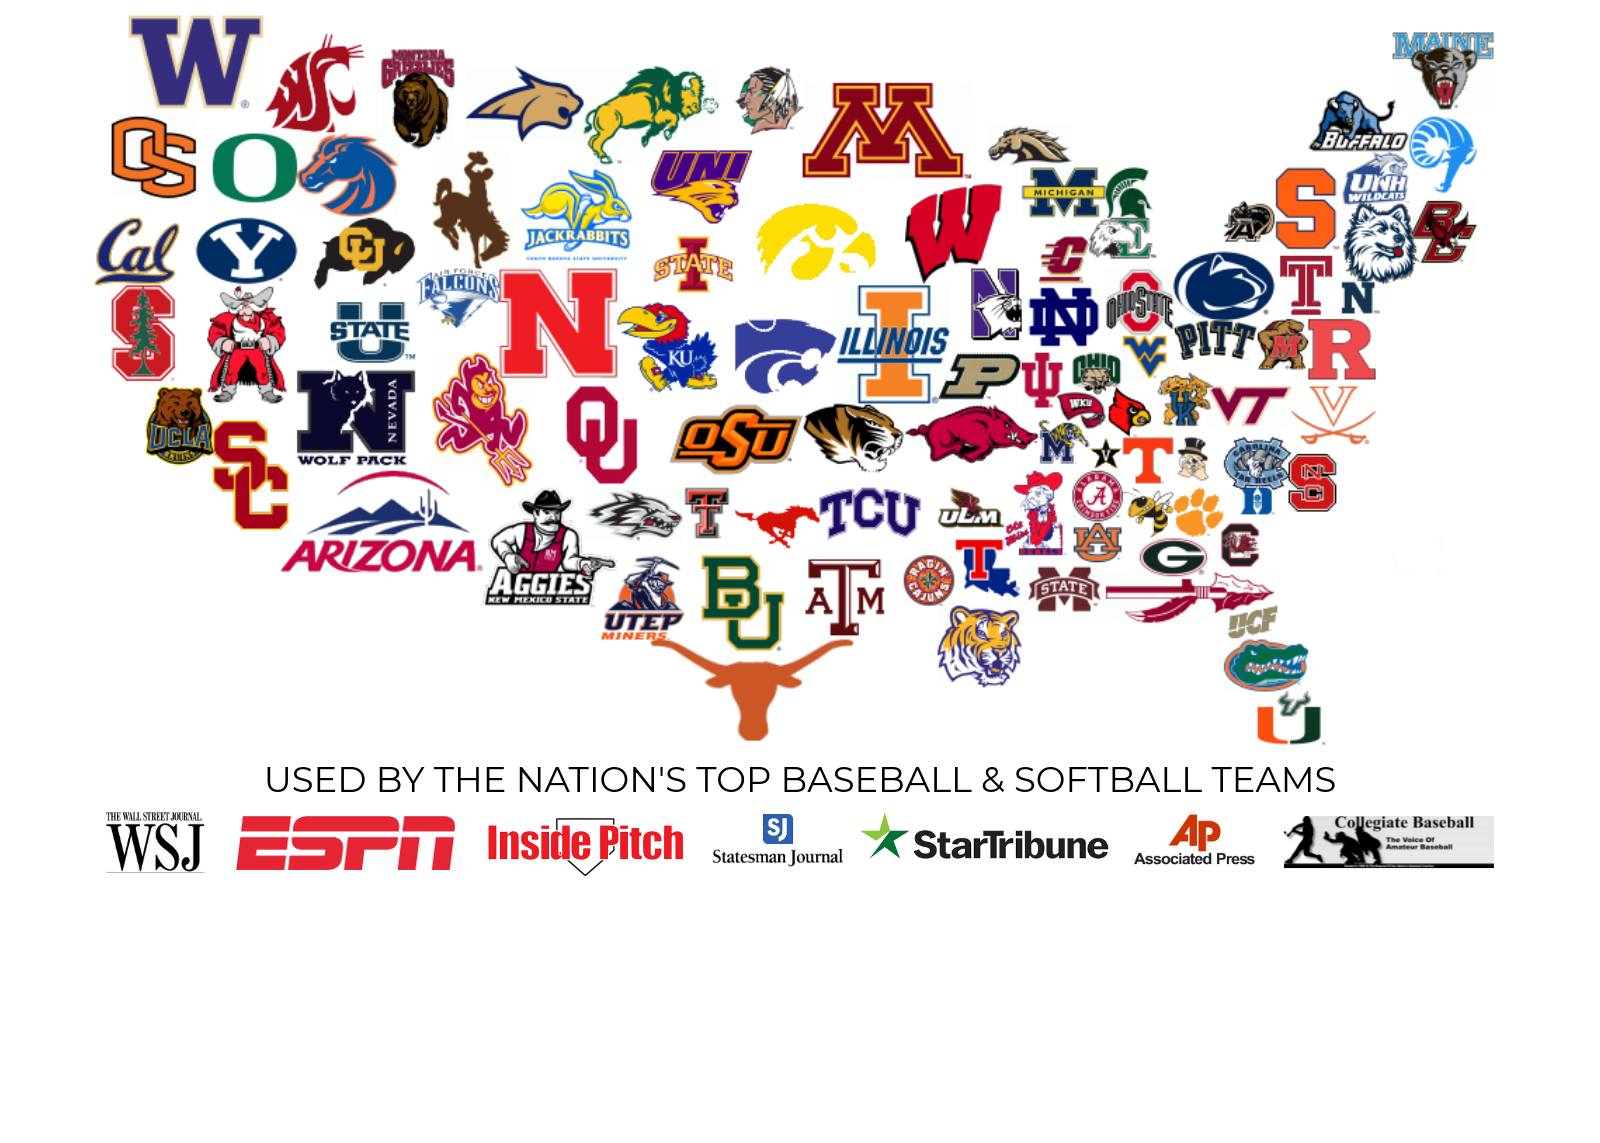 Own The Zone Sports - The Original and #1 Pick Proof Wristband Sign Software & Wristbands as Used by the MLB and NCAA Levels. As Seen in ESPN, The Wall Street Journal, Inside Pitch Magazine, The Associated Press, The NFCA, The ABCA and Collegiate Baseball